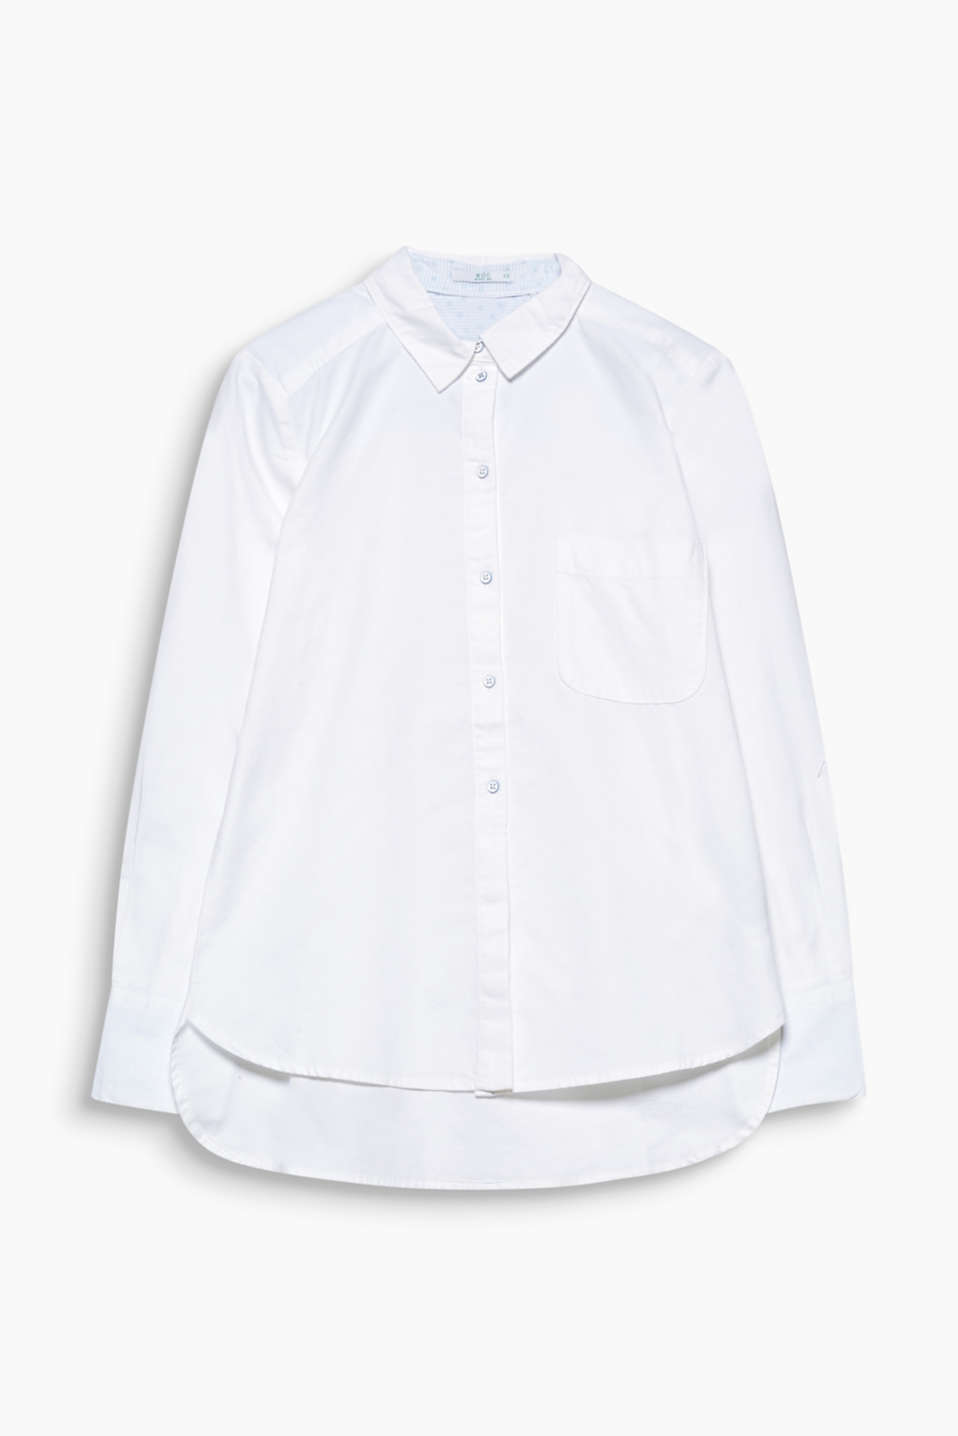 With patterned lining details: classic Oxford shirt blouse made of pure, comfortable organic cotton.